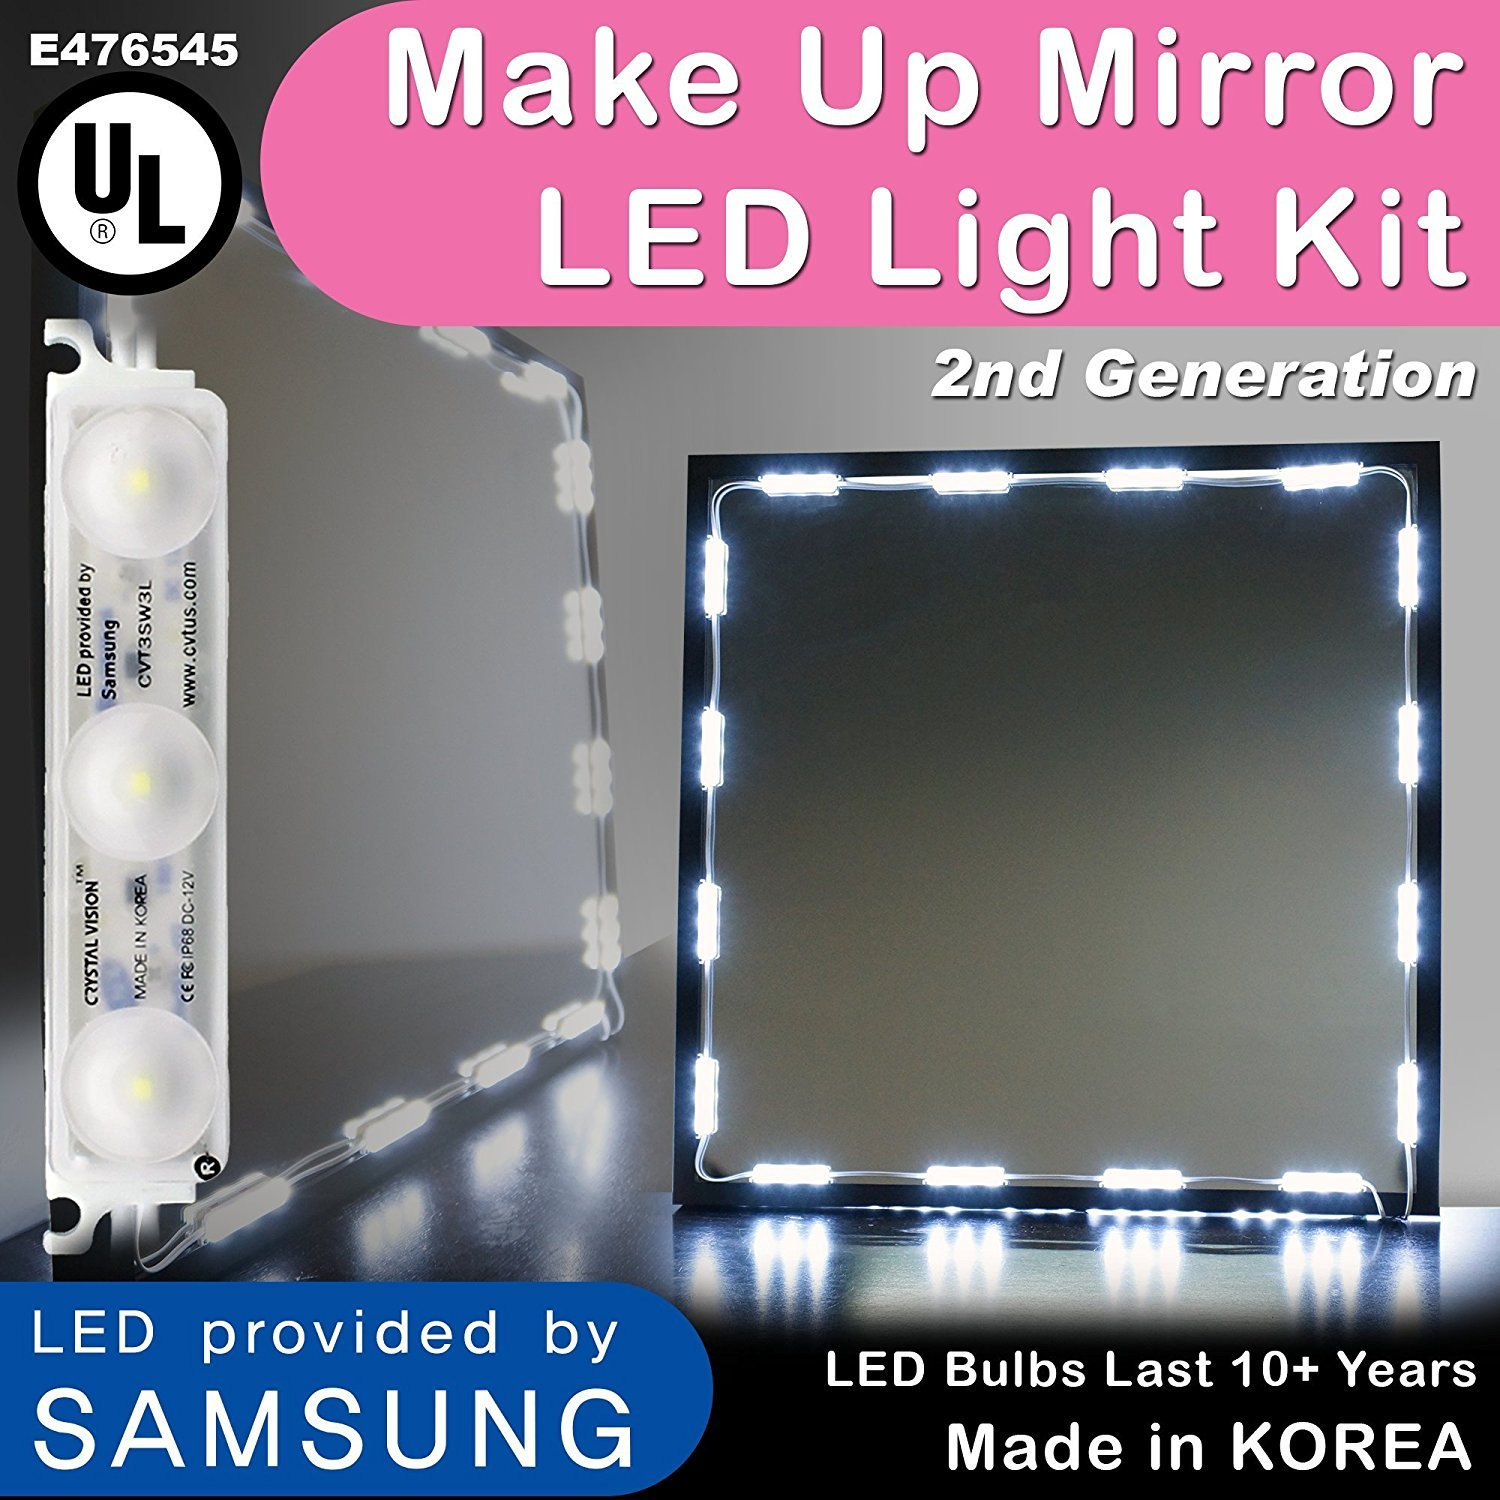 Crystal Vision Hollywood Style Makeup Mirror LED Light Kit Provided by Samsung for Cosmetic Mirror Vanity Mirror w/Dimmer Controller (75 LED Bulb / 12.5ft) [Slim Cool White]